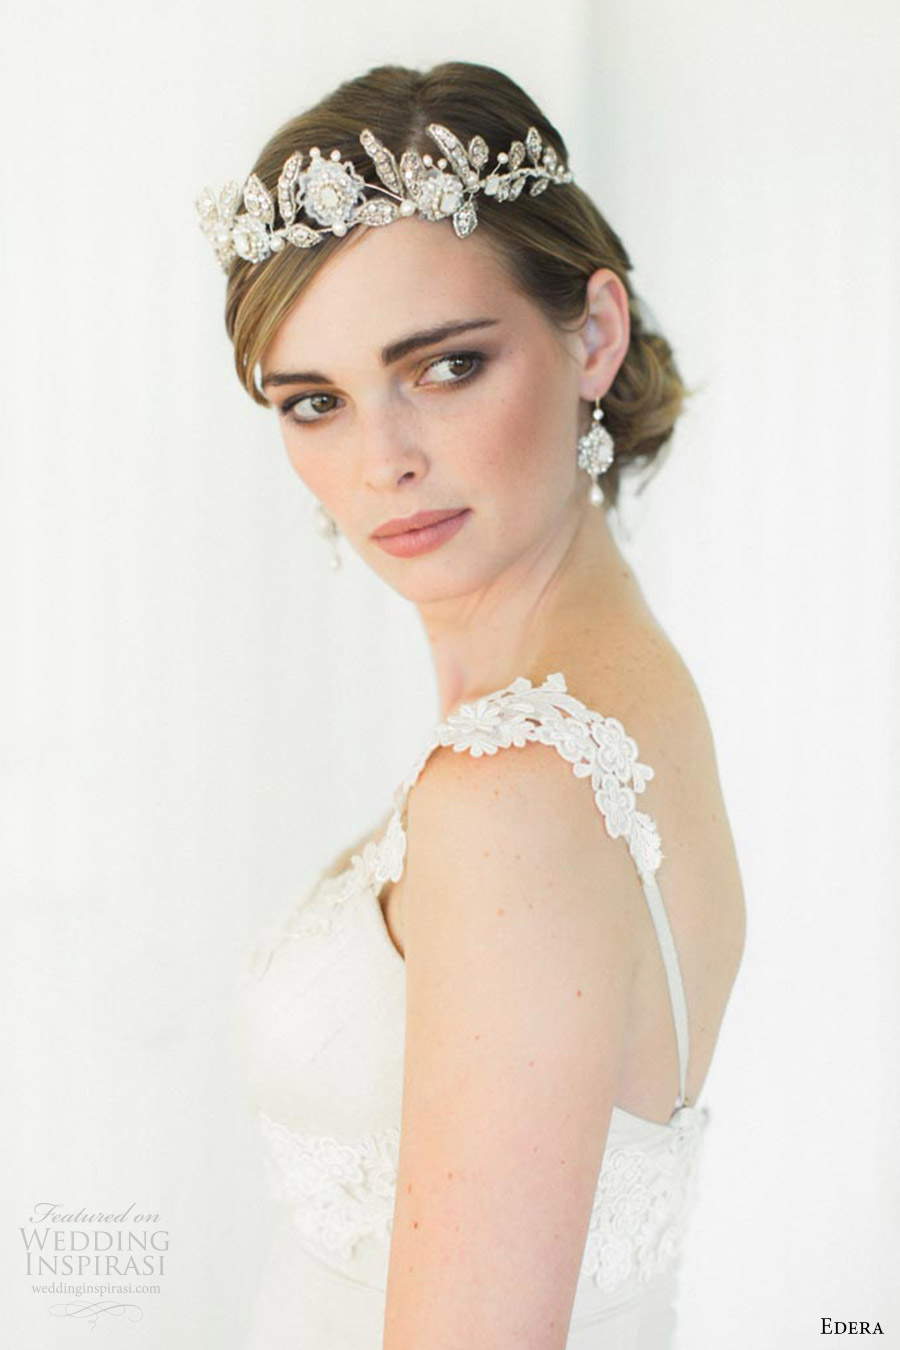 edera jewelry 2016 bridal accessories collection (aquarelle) tiara sv romantic edwardian inspired headpiece